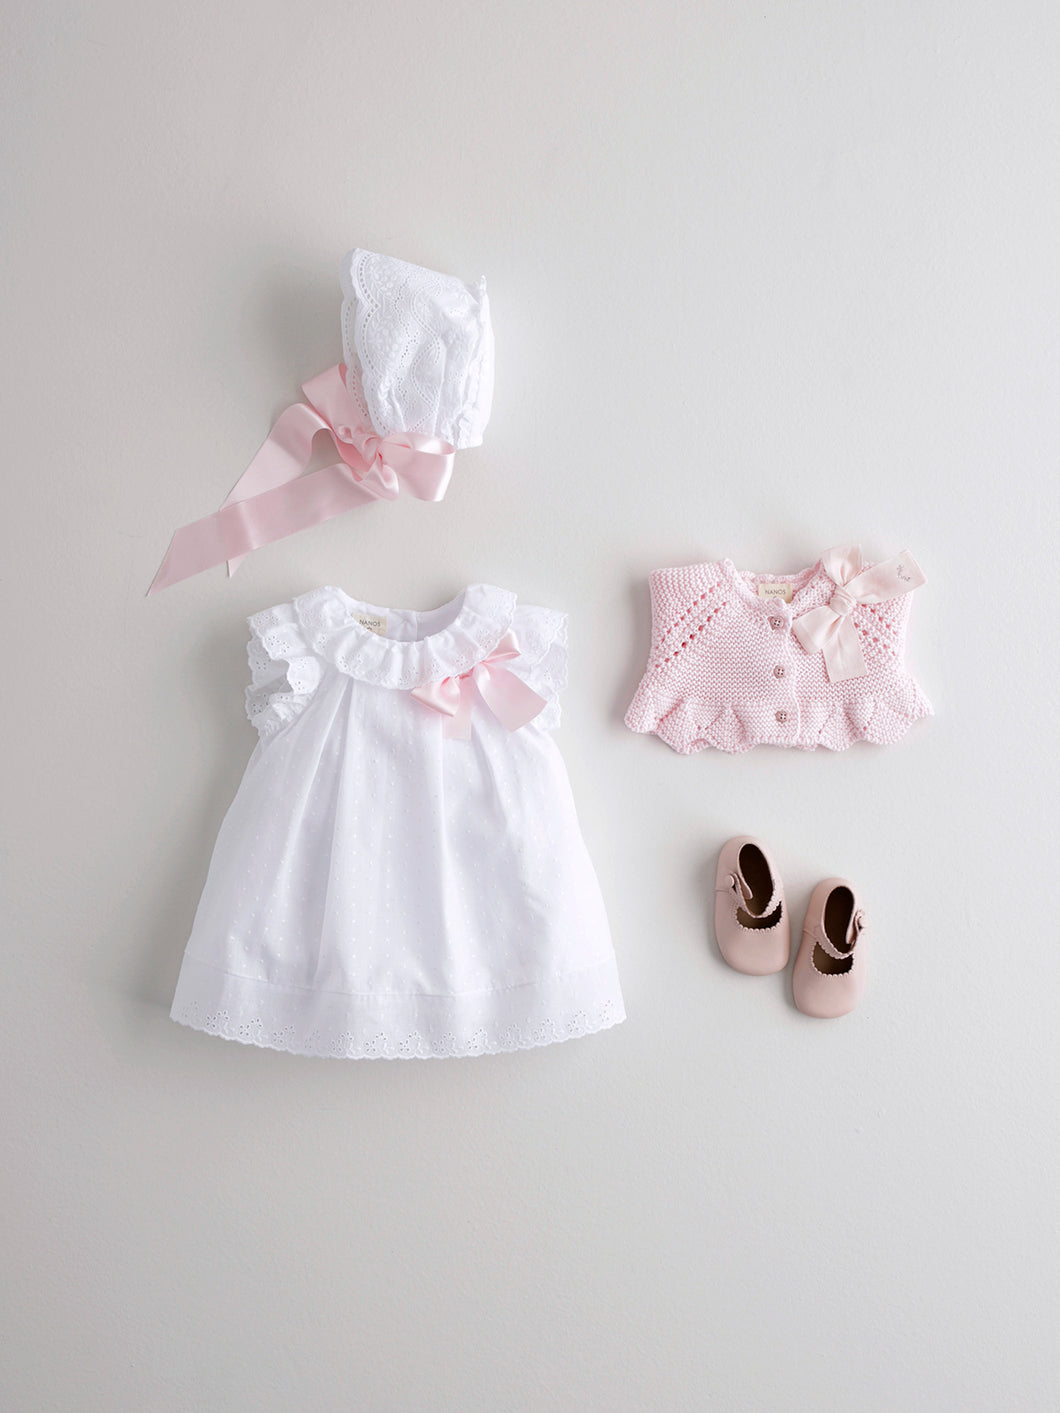 BABY GIRL DRESS IN WHITE WITH PINK BOW